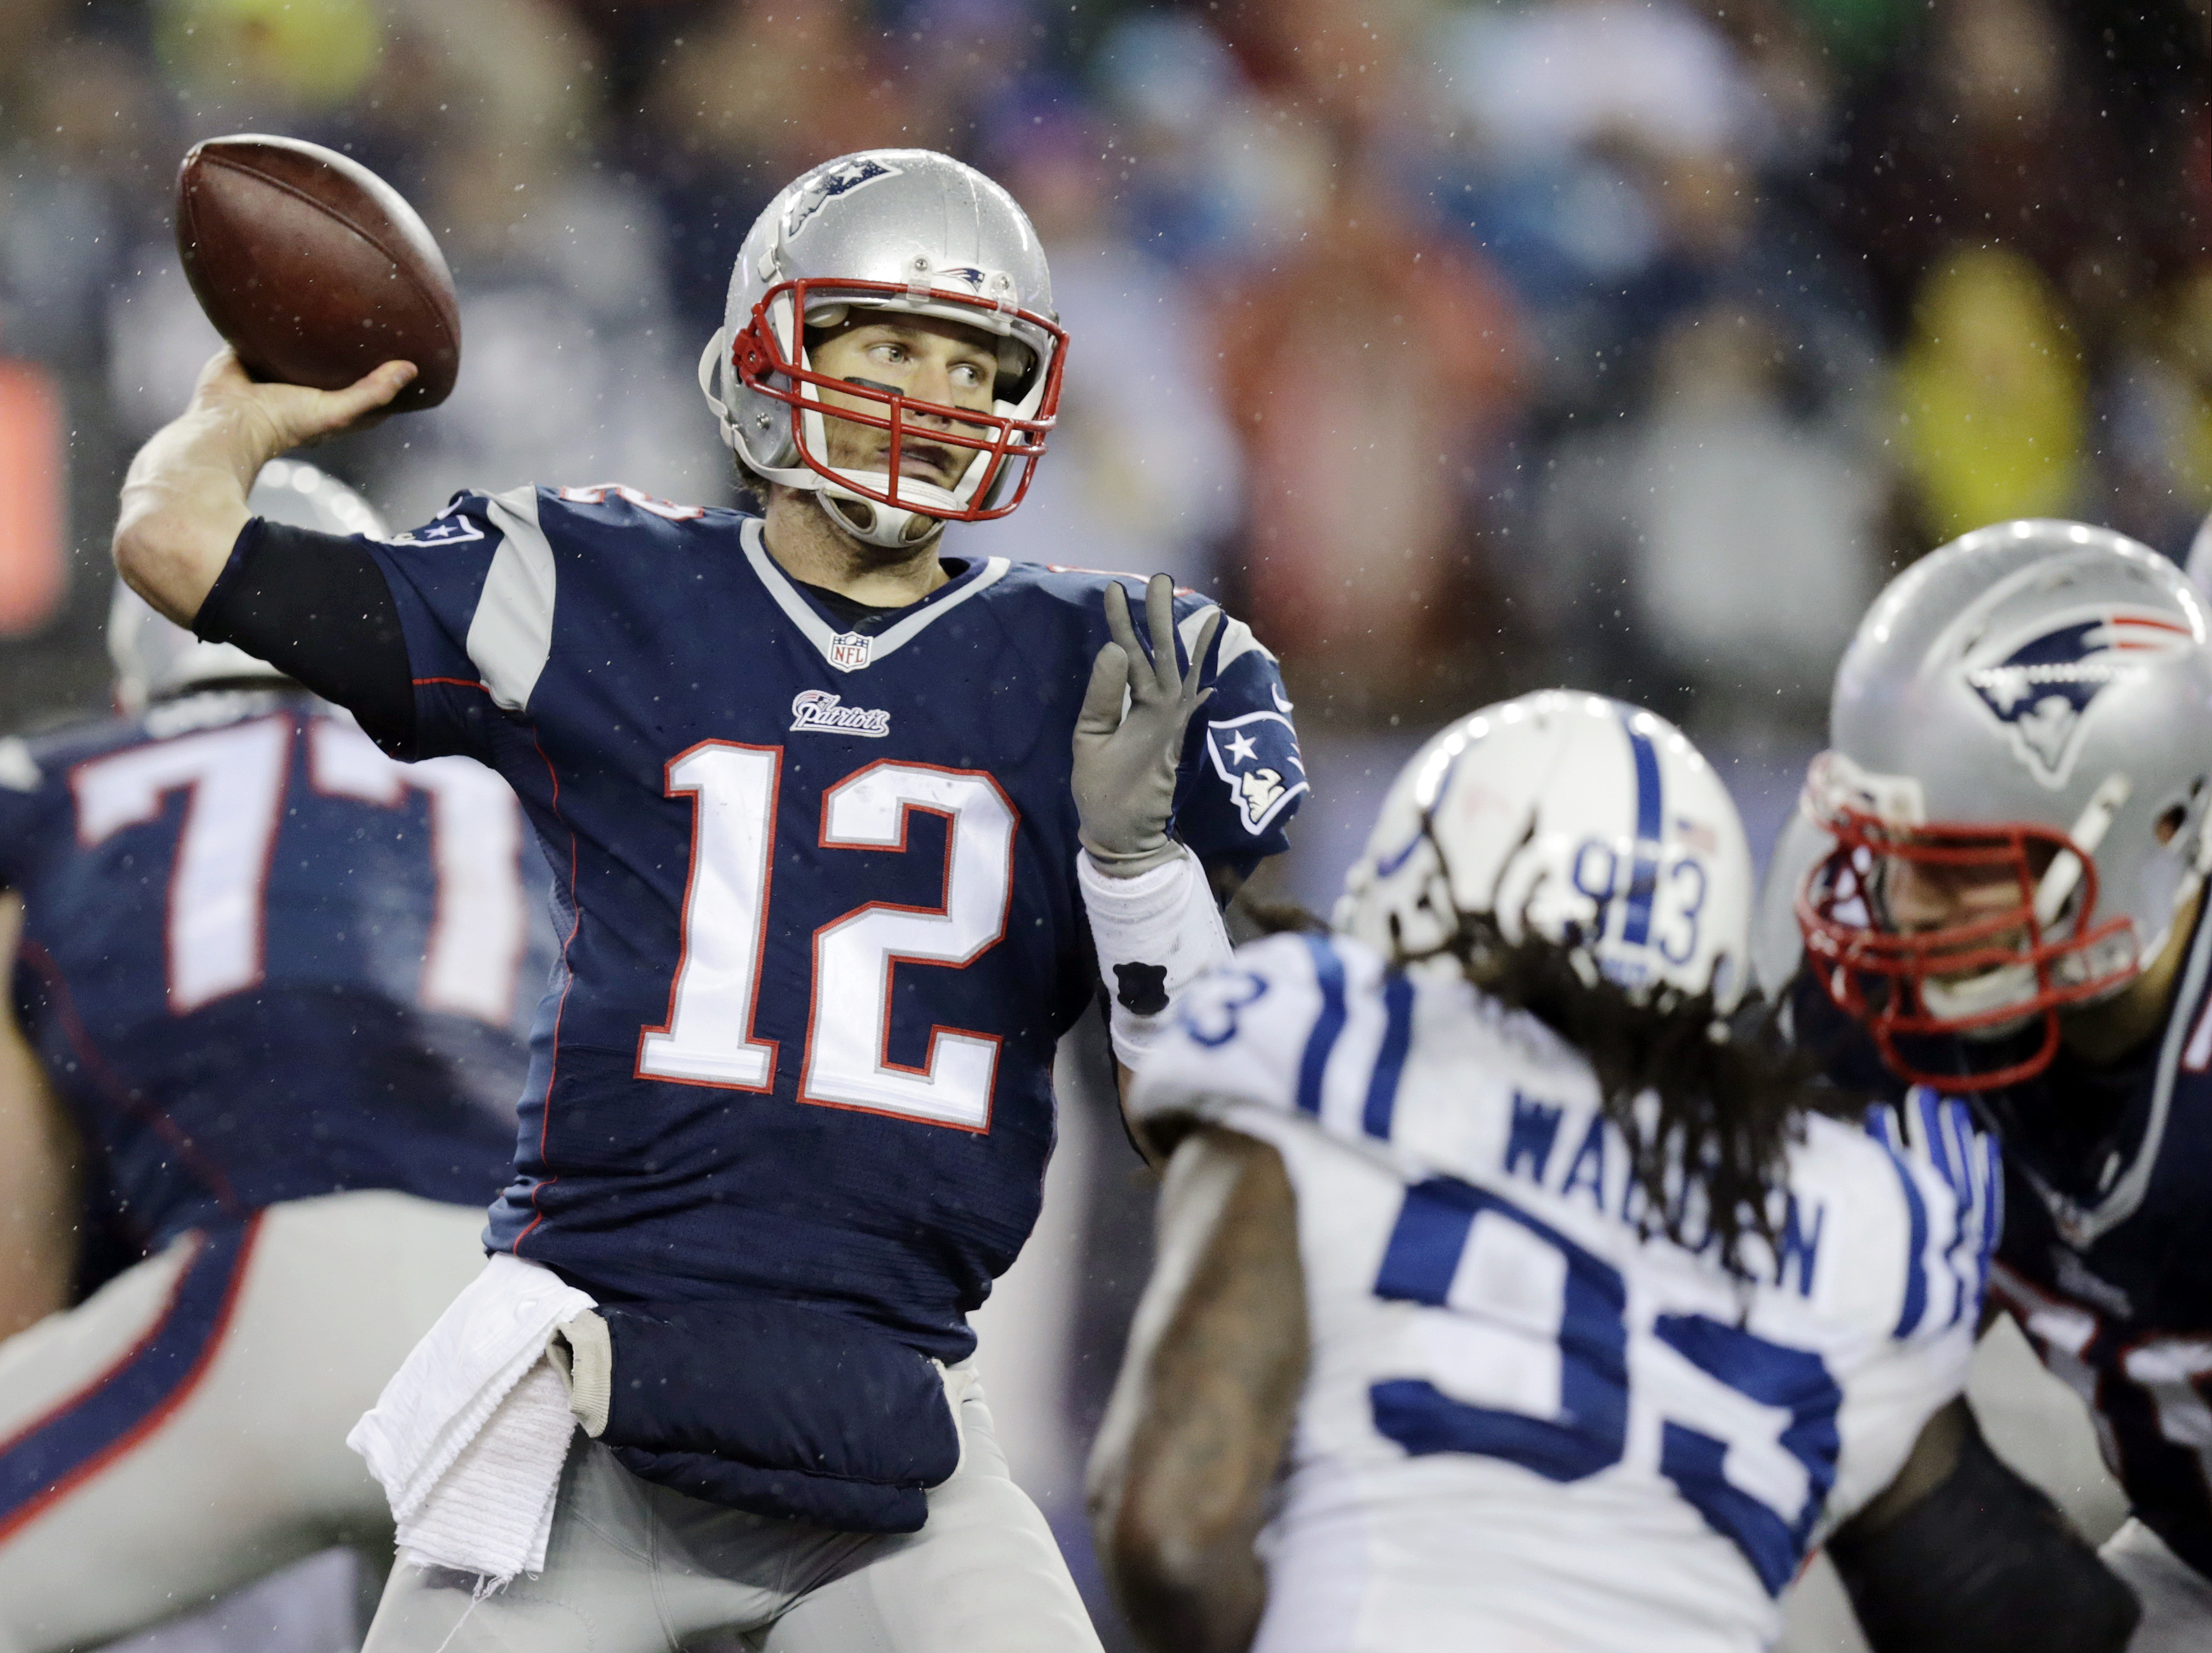 FILE - In this Jan. 18, 2015, file photo, New England Patriots quarterback Tom Brady (12)  passes against the Indianapolis Colts during the second half of the NFL football AFC Championship game in Foxborough, Mass. An NFL investigation has found that New